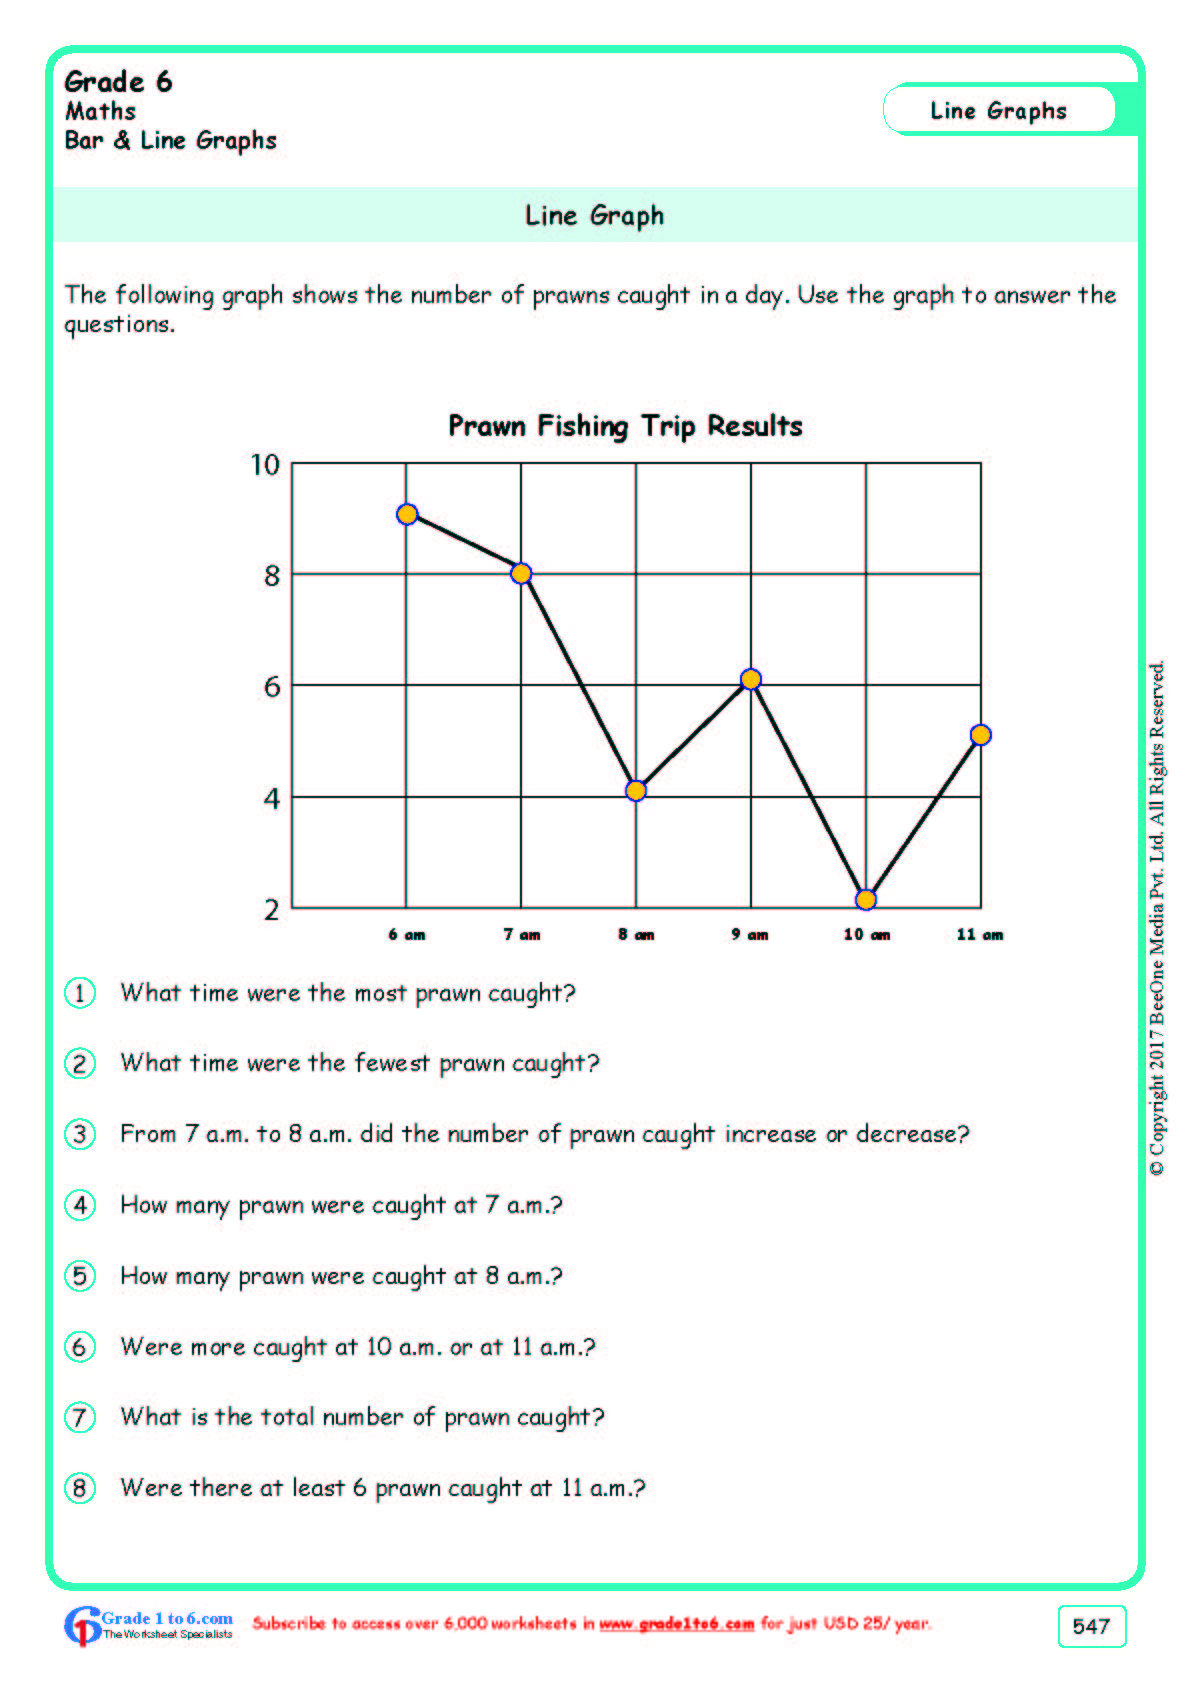 Grade 6 Class Six Line Graphs Worksheets Ade1to6